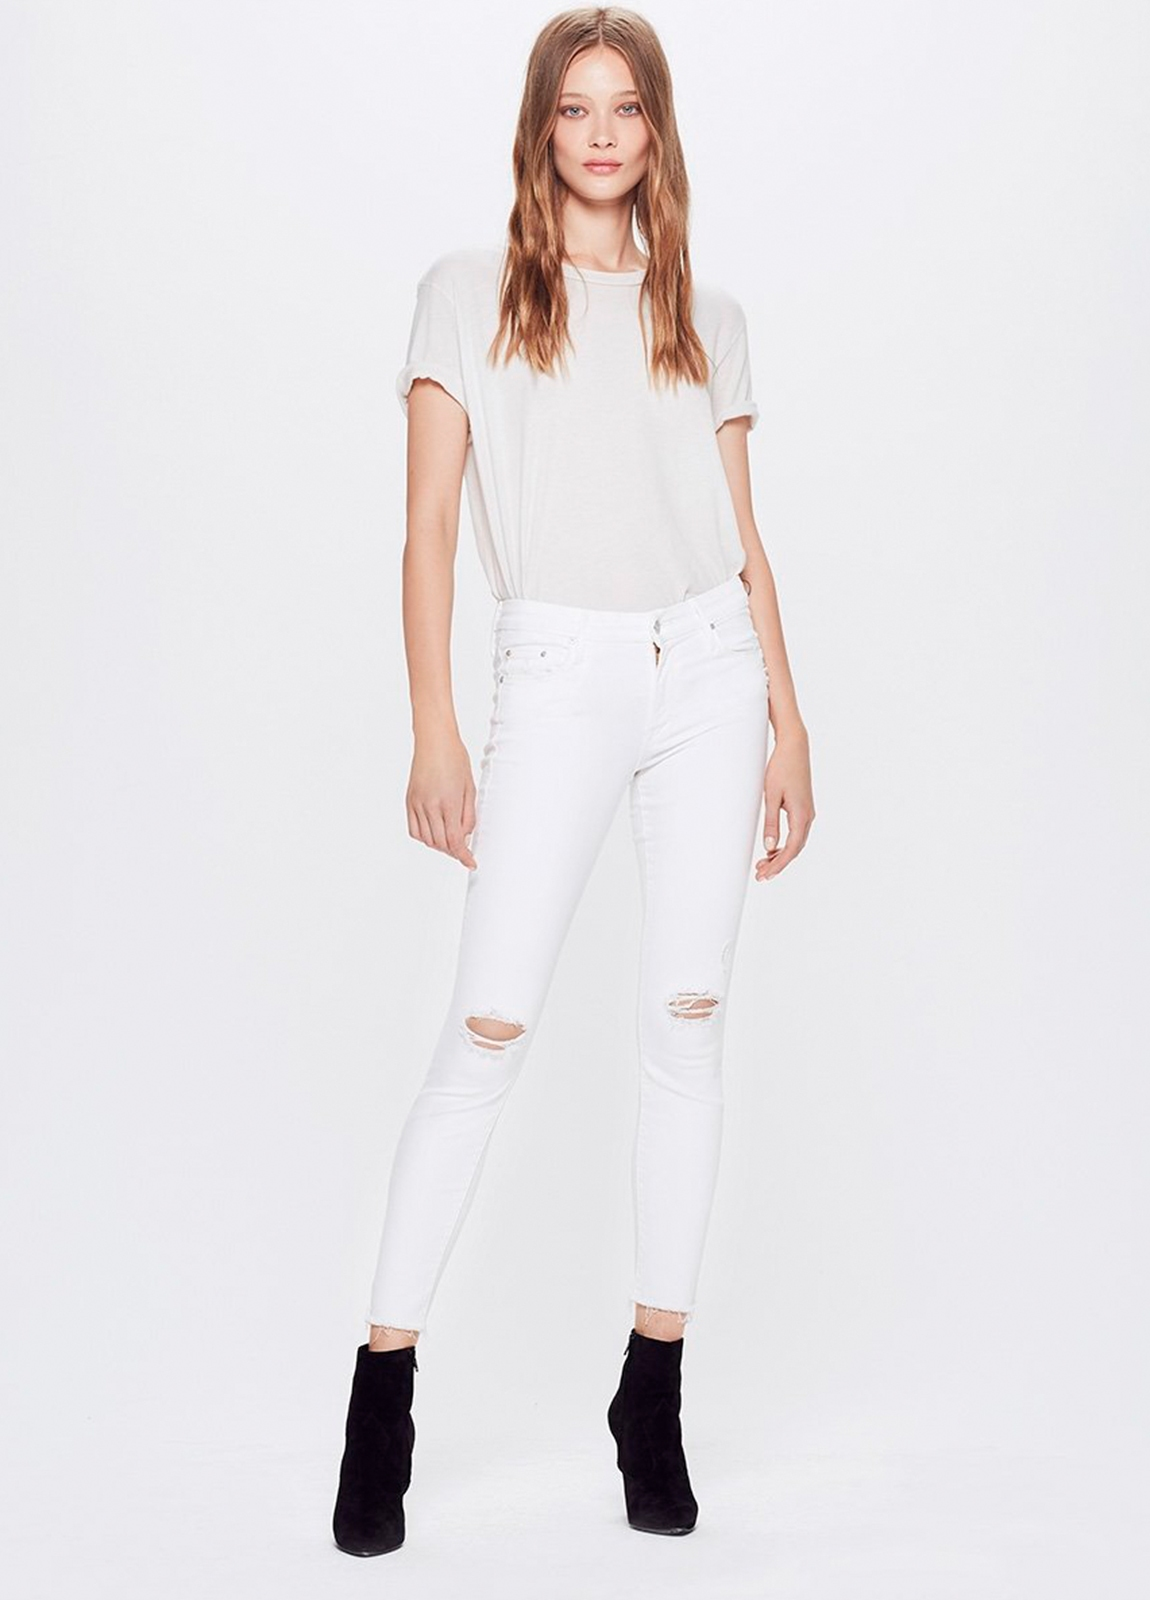 Tejano woman RIPPED KNEE JEANS color blanco. 87% Algodón 9% Poliéster 4% Elastáno.